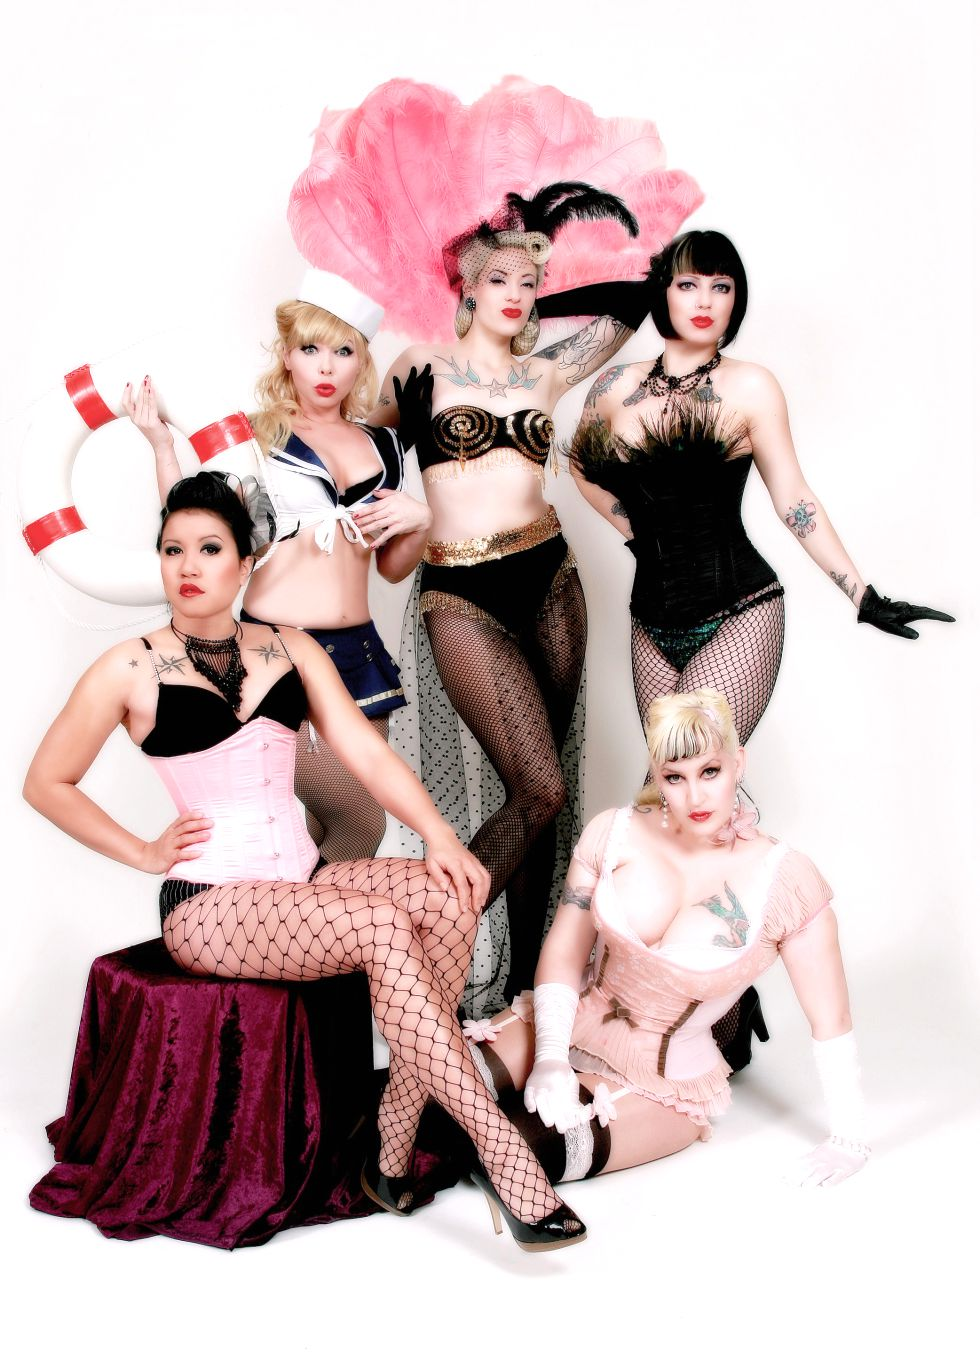 The Teaserettes